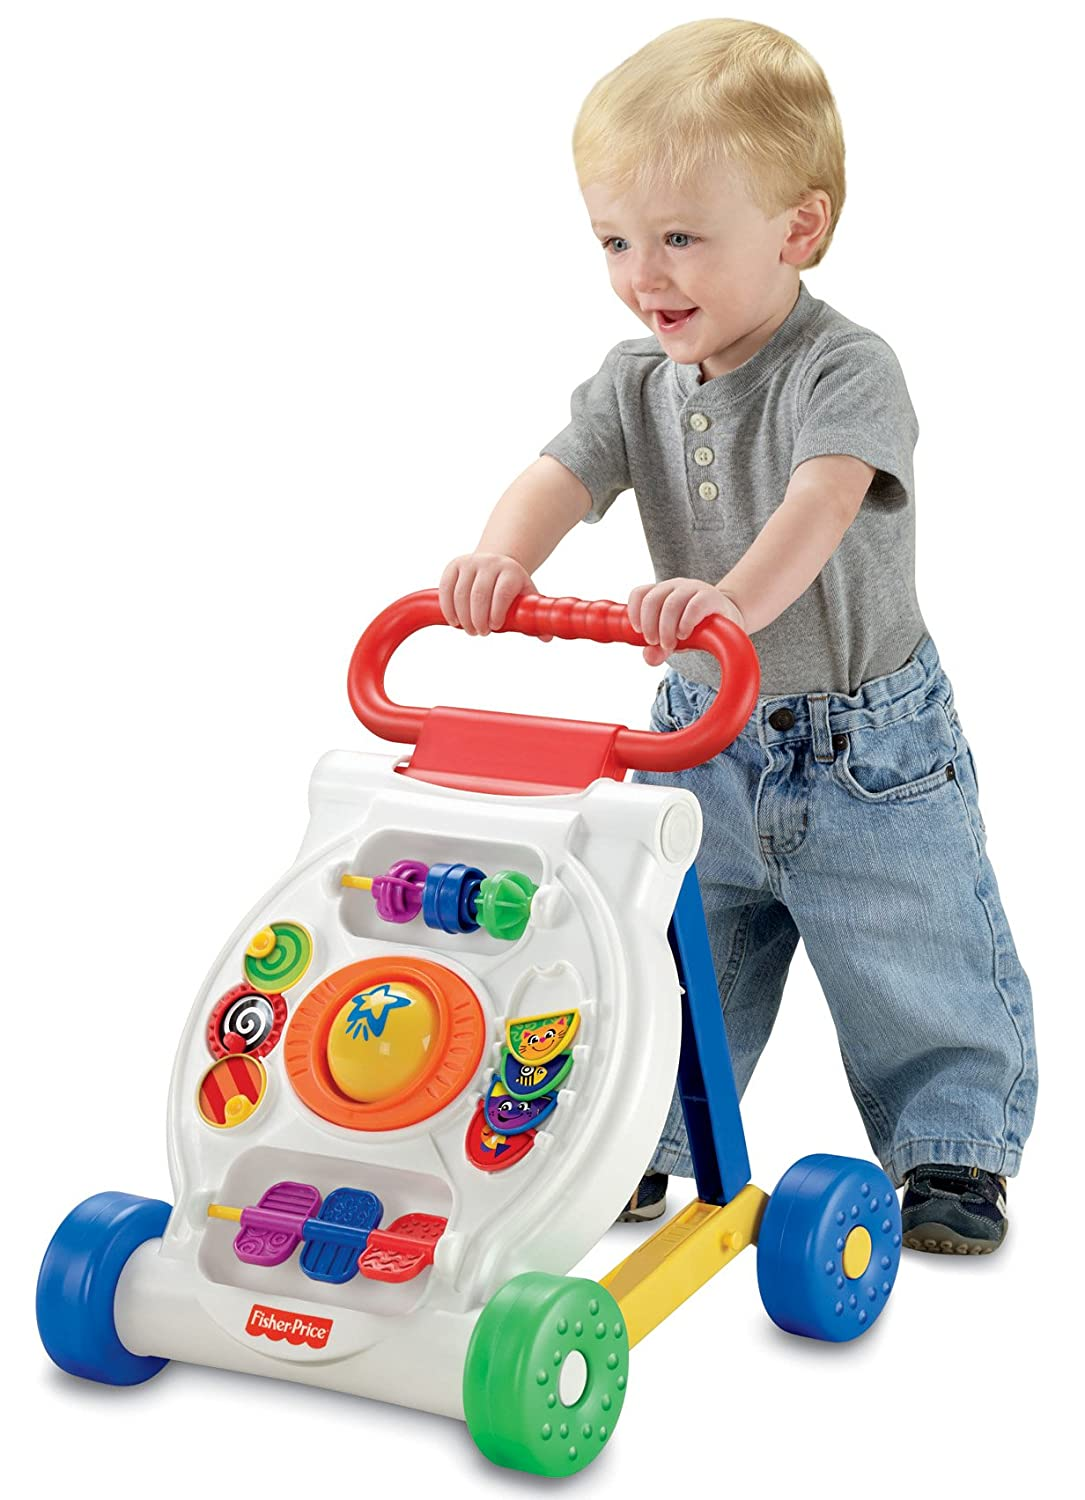 Toys that Help Your Toddler Learn to Walk - Verywell Family